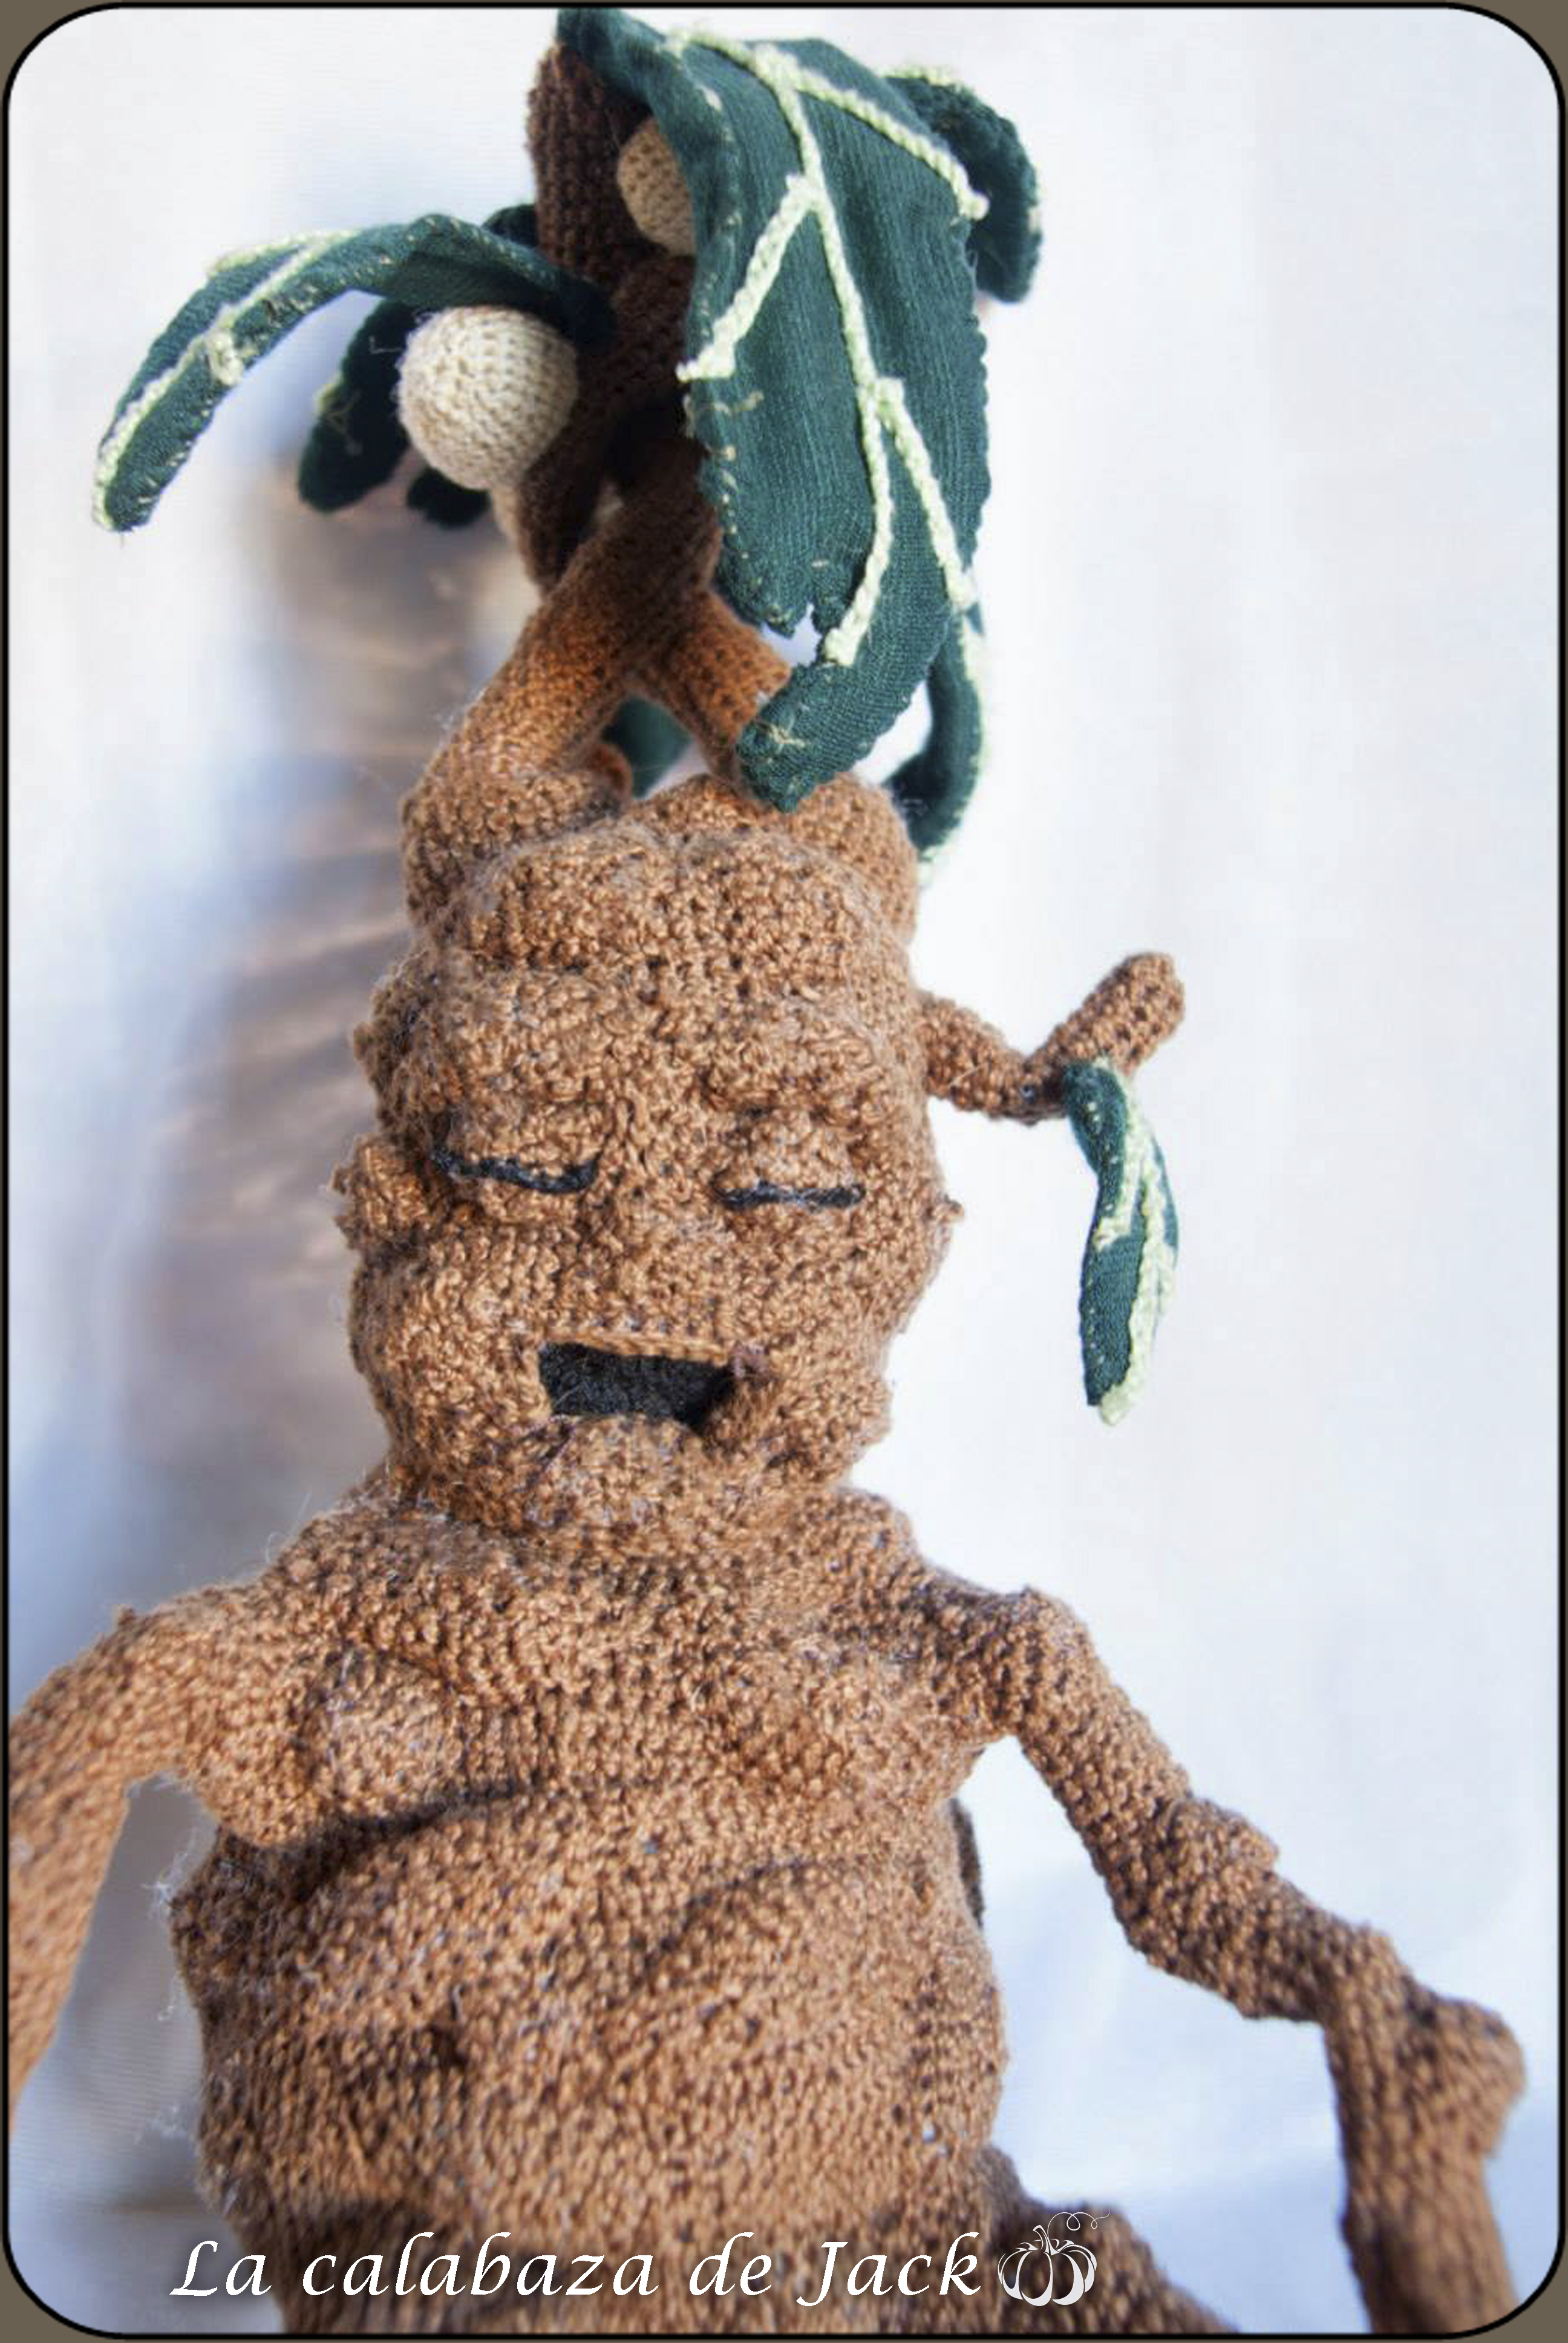 A Mandrake Root that I made. X post from /r/crochet. : harrypotter | 3872x2592